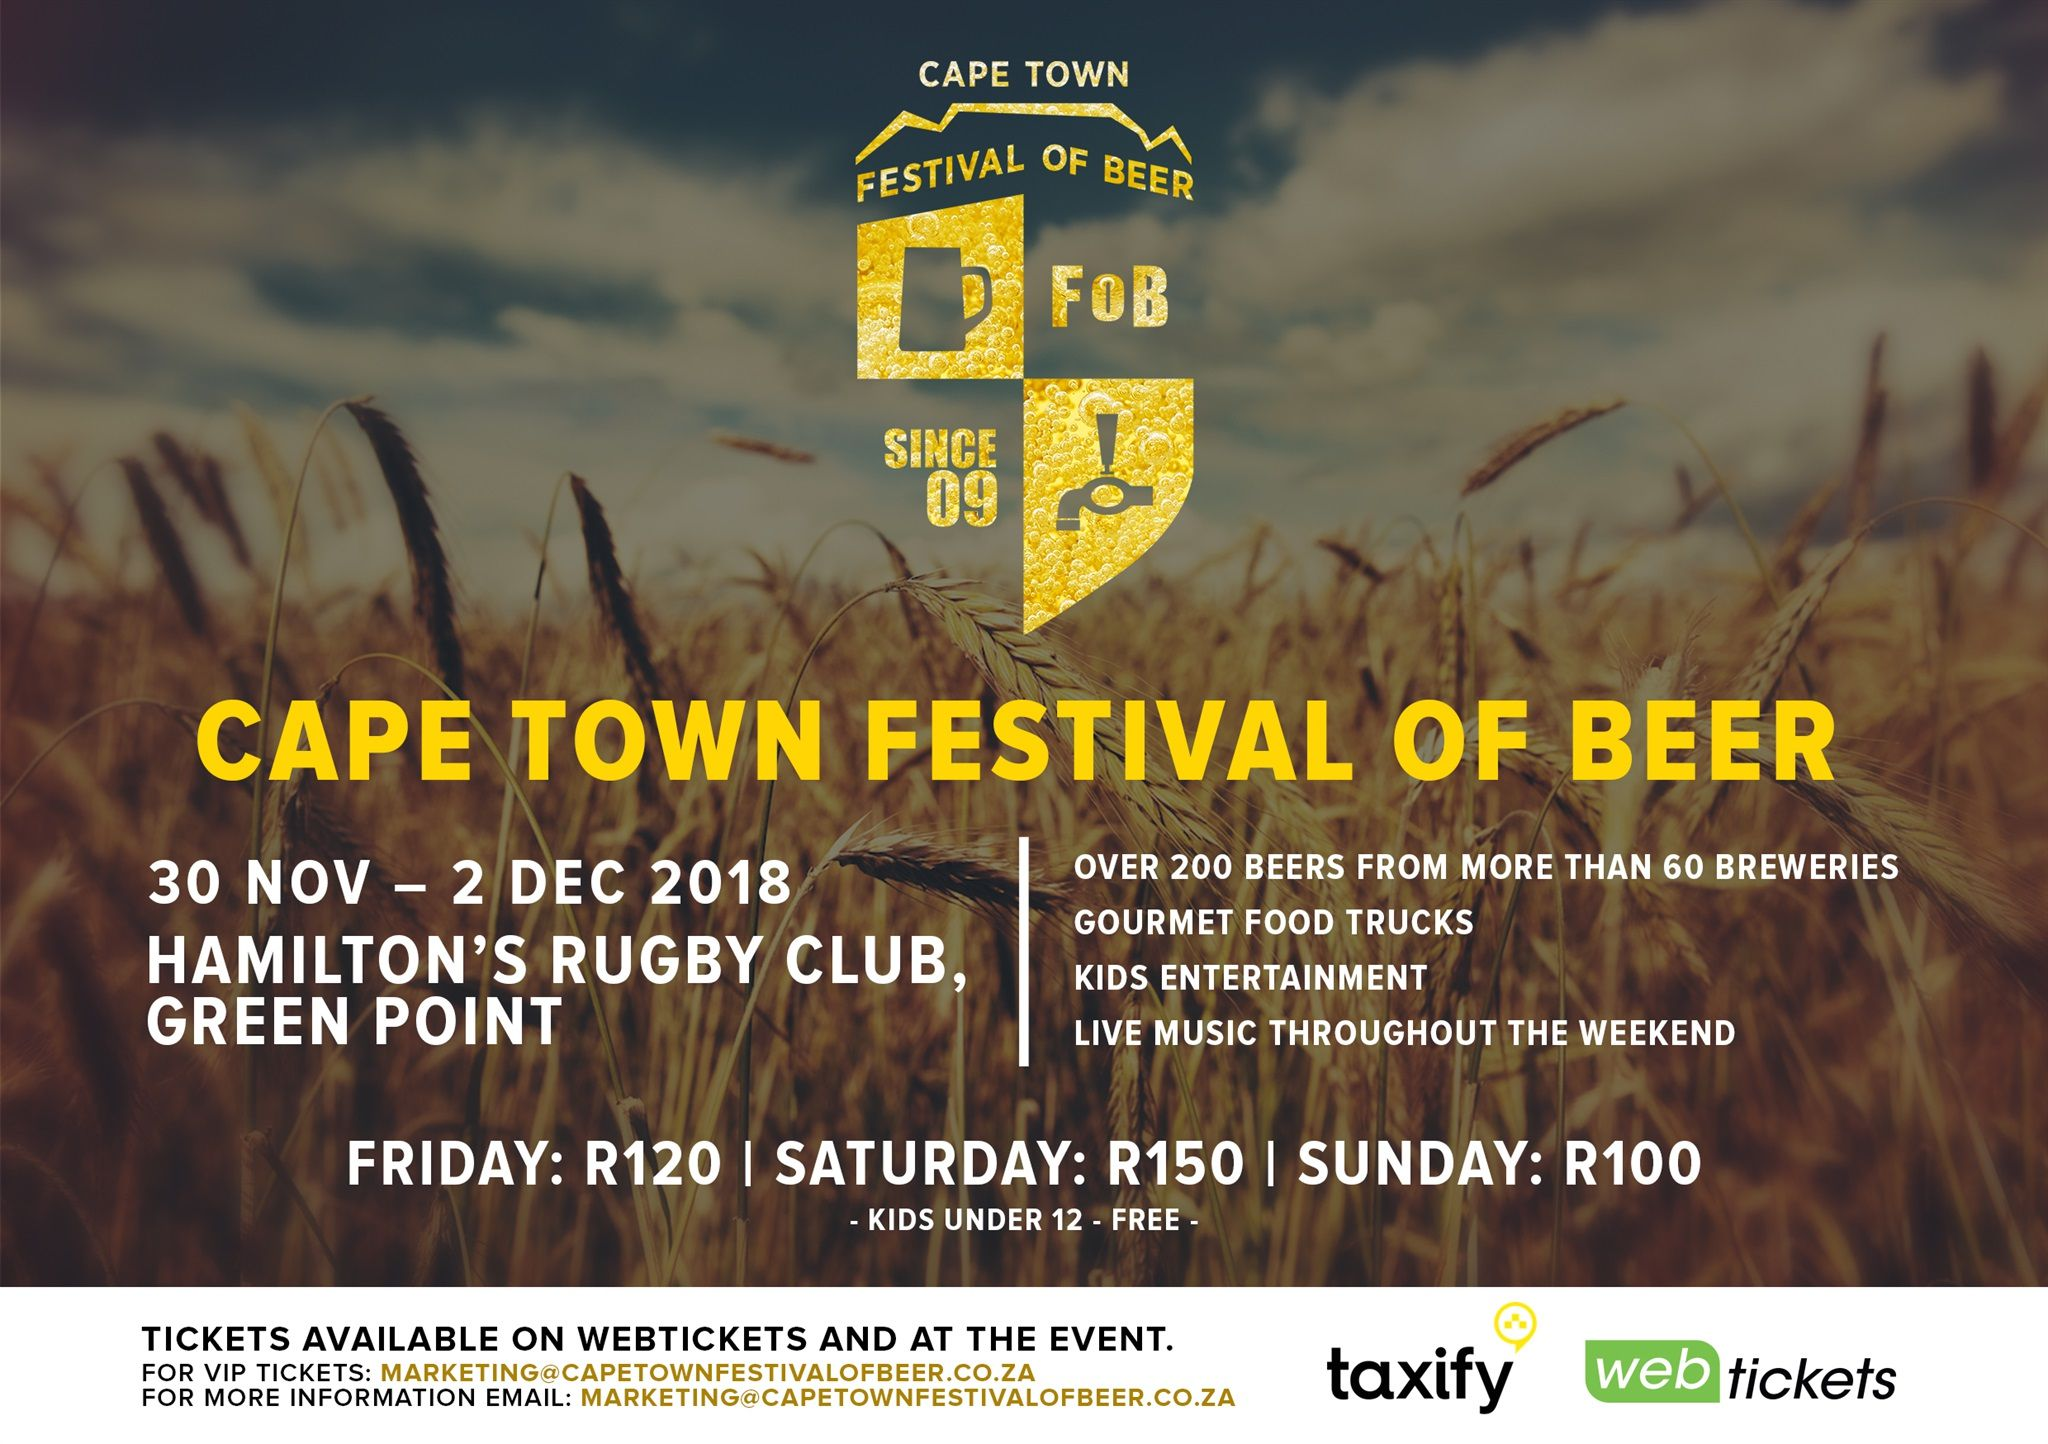 What's On The 2018 Cape Town Festival Of Beer photo